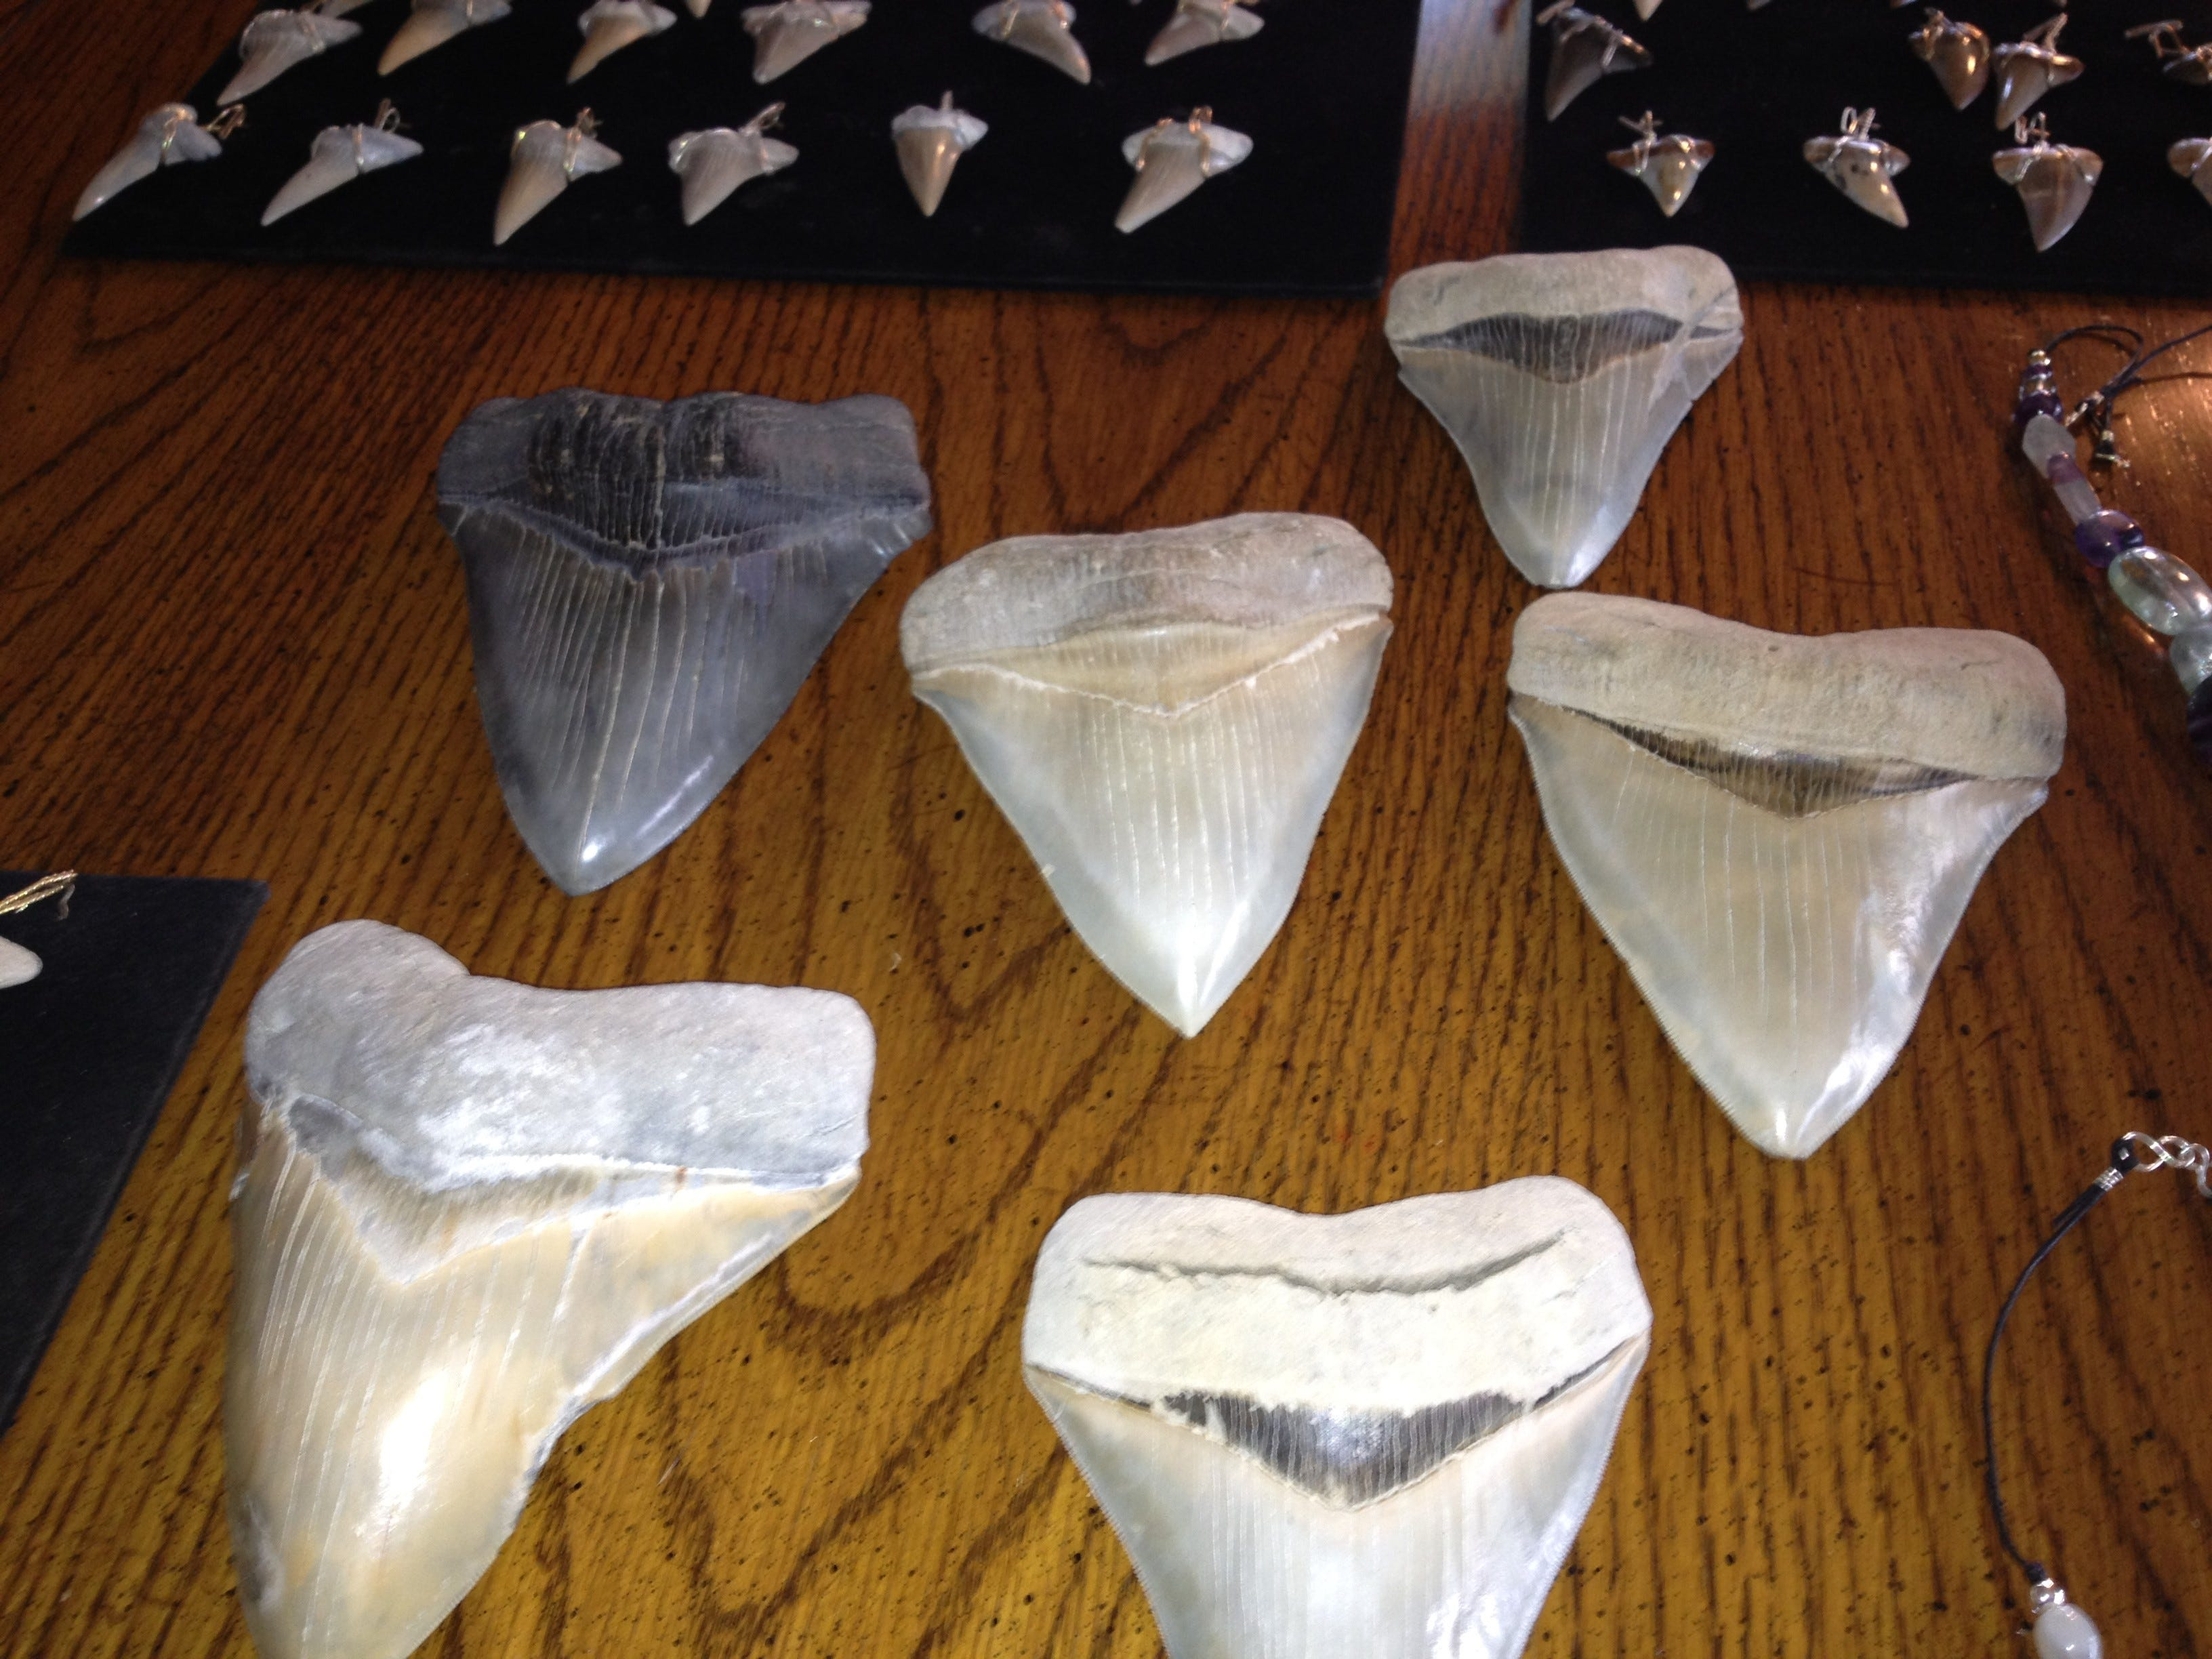 Carbon dating megalodon tooth found